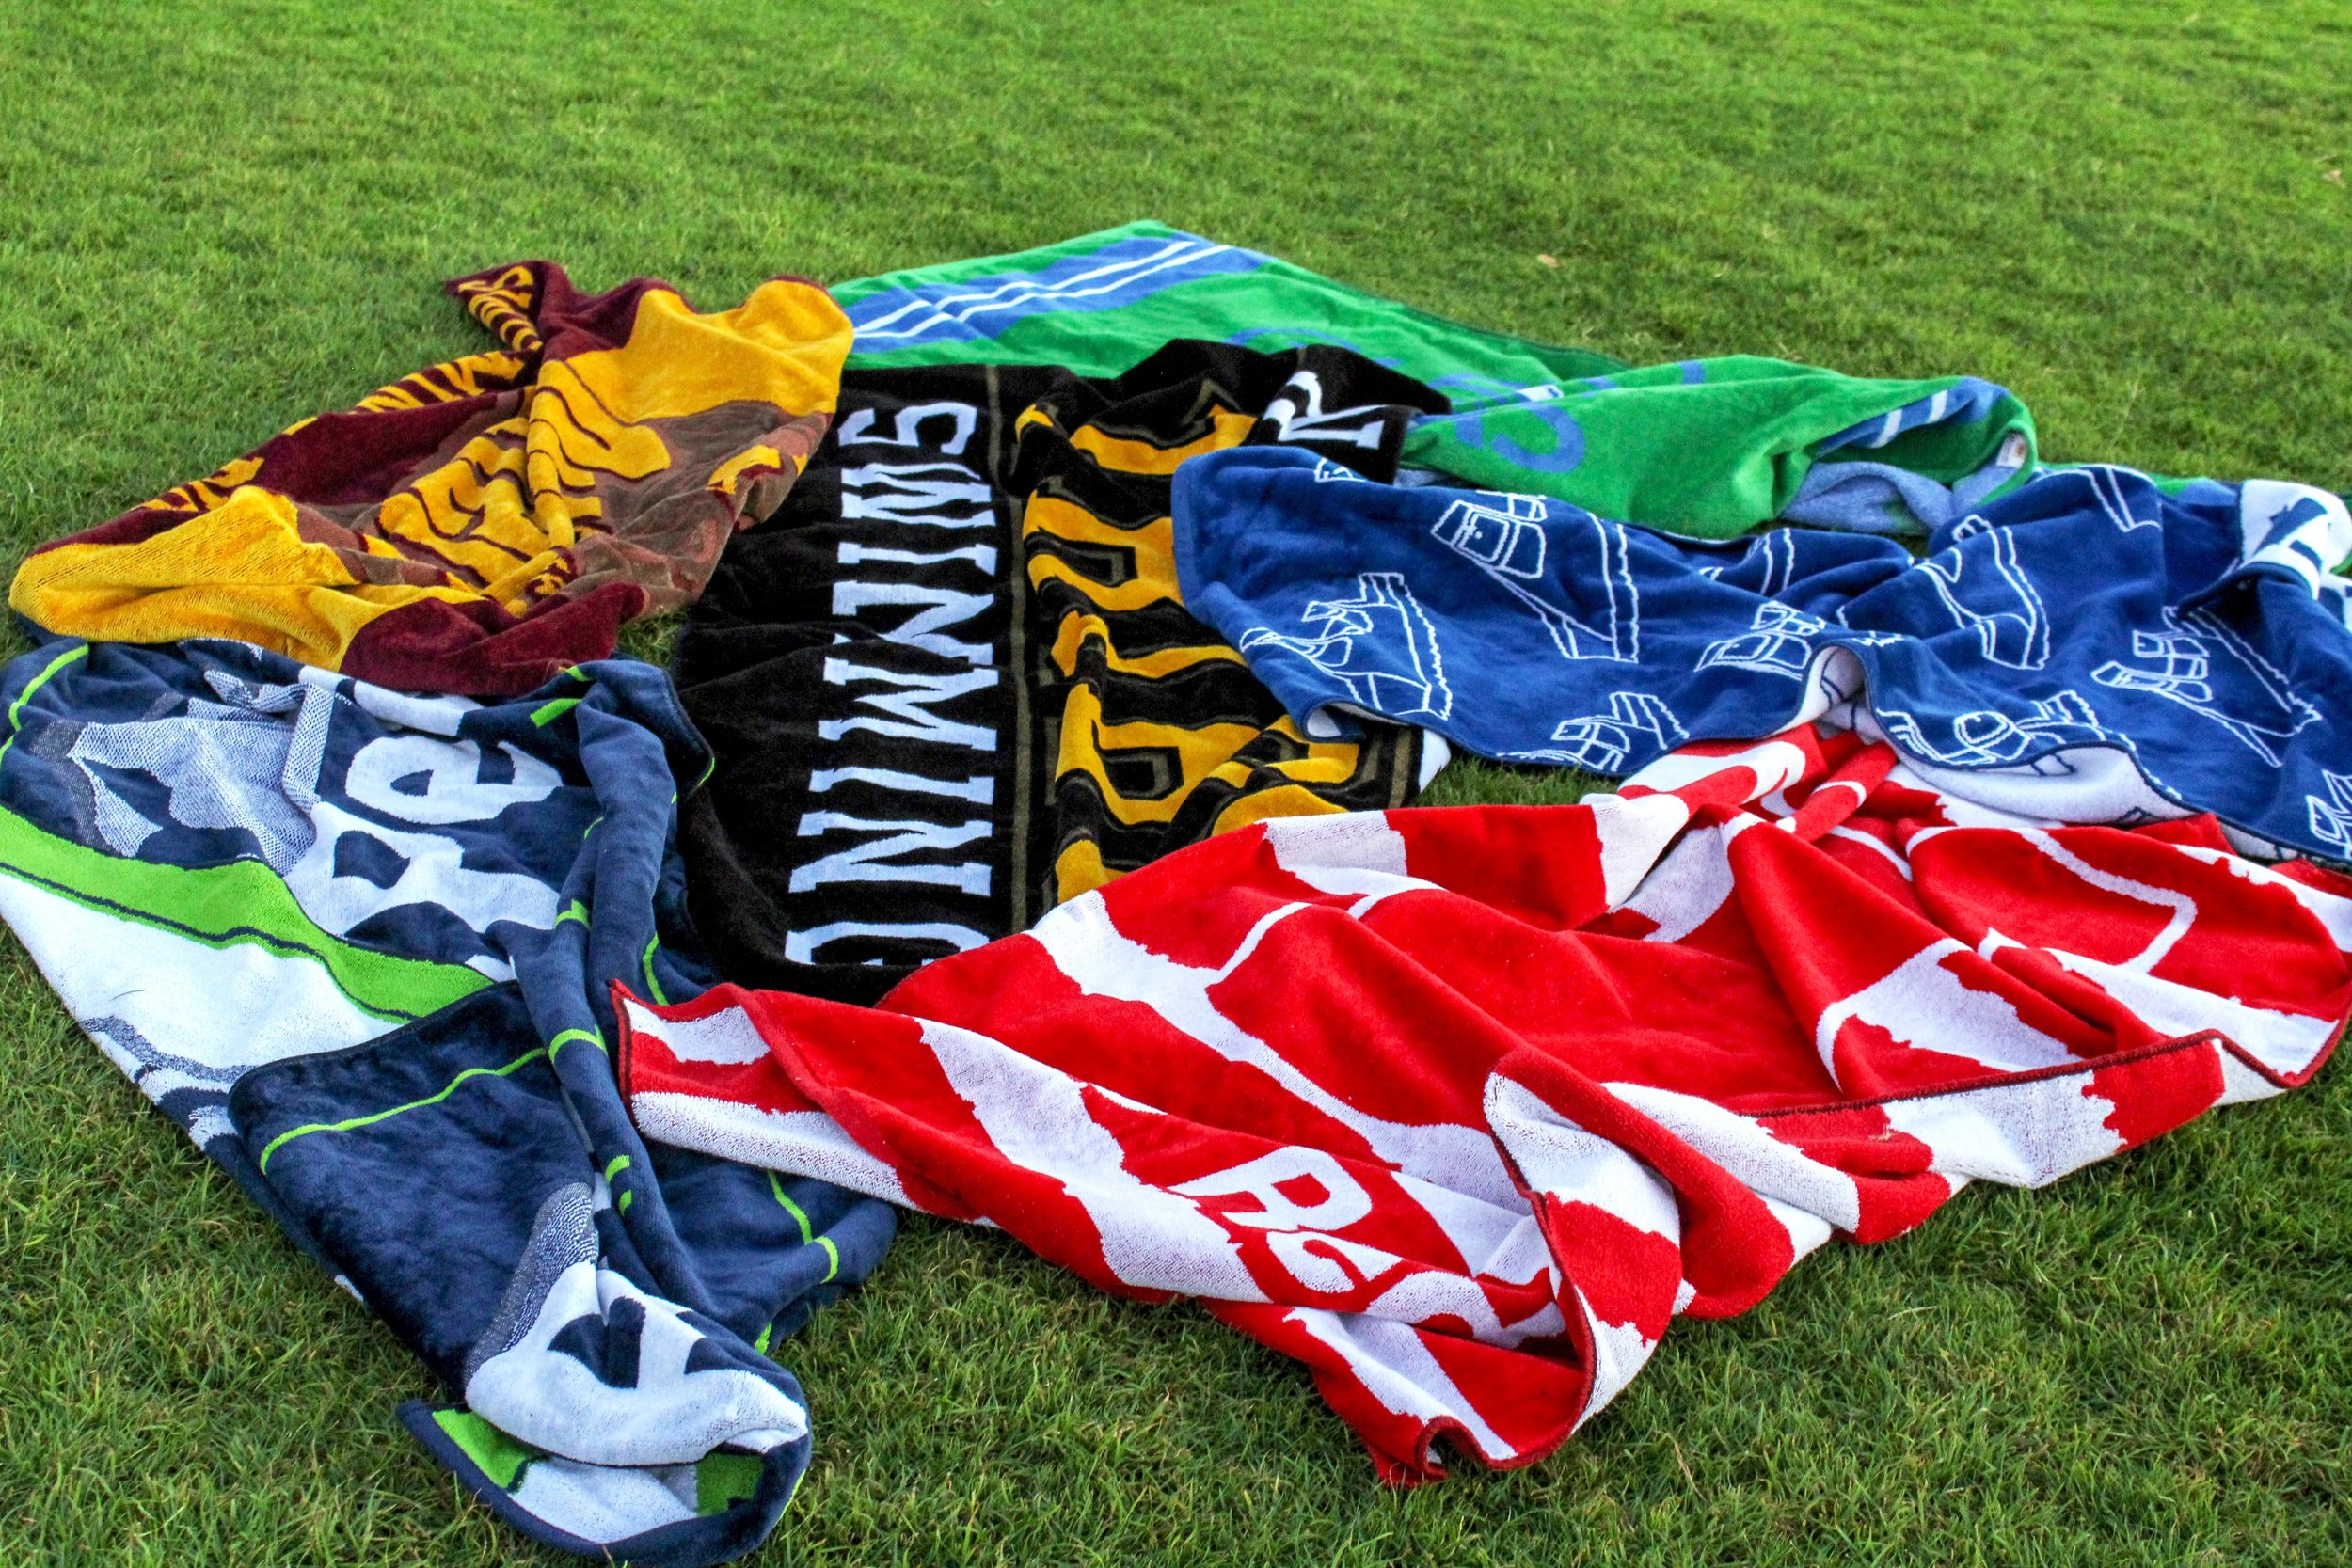 towels on grass .jpg